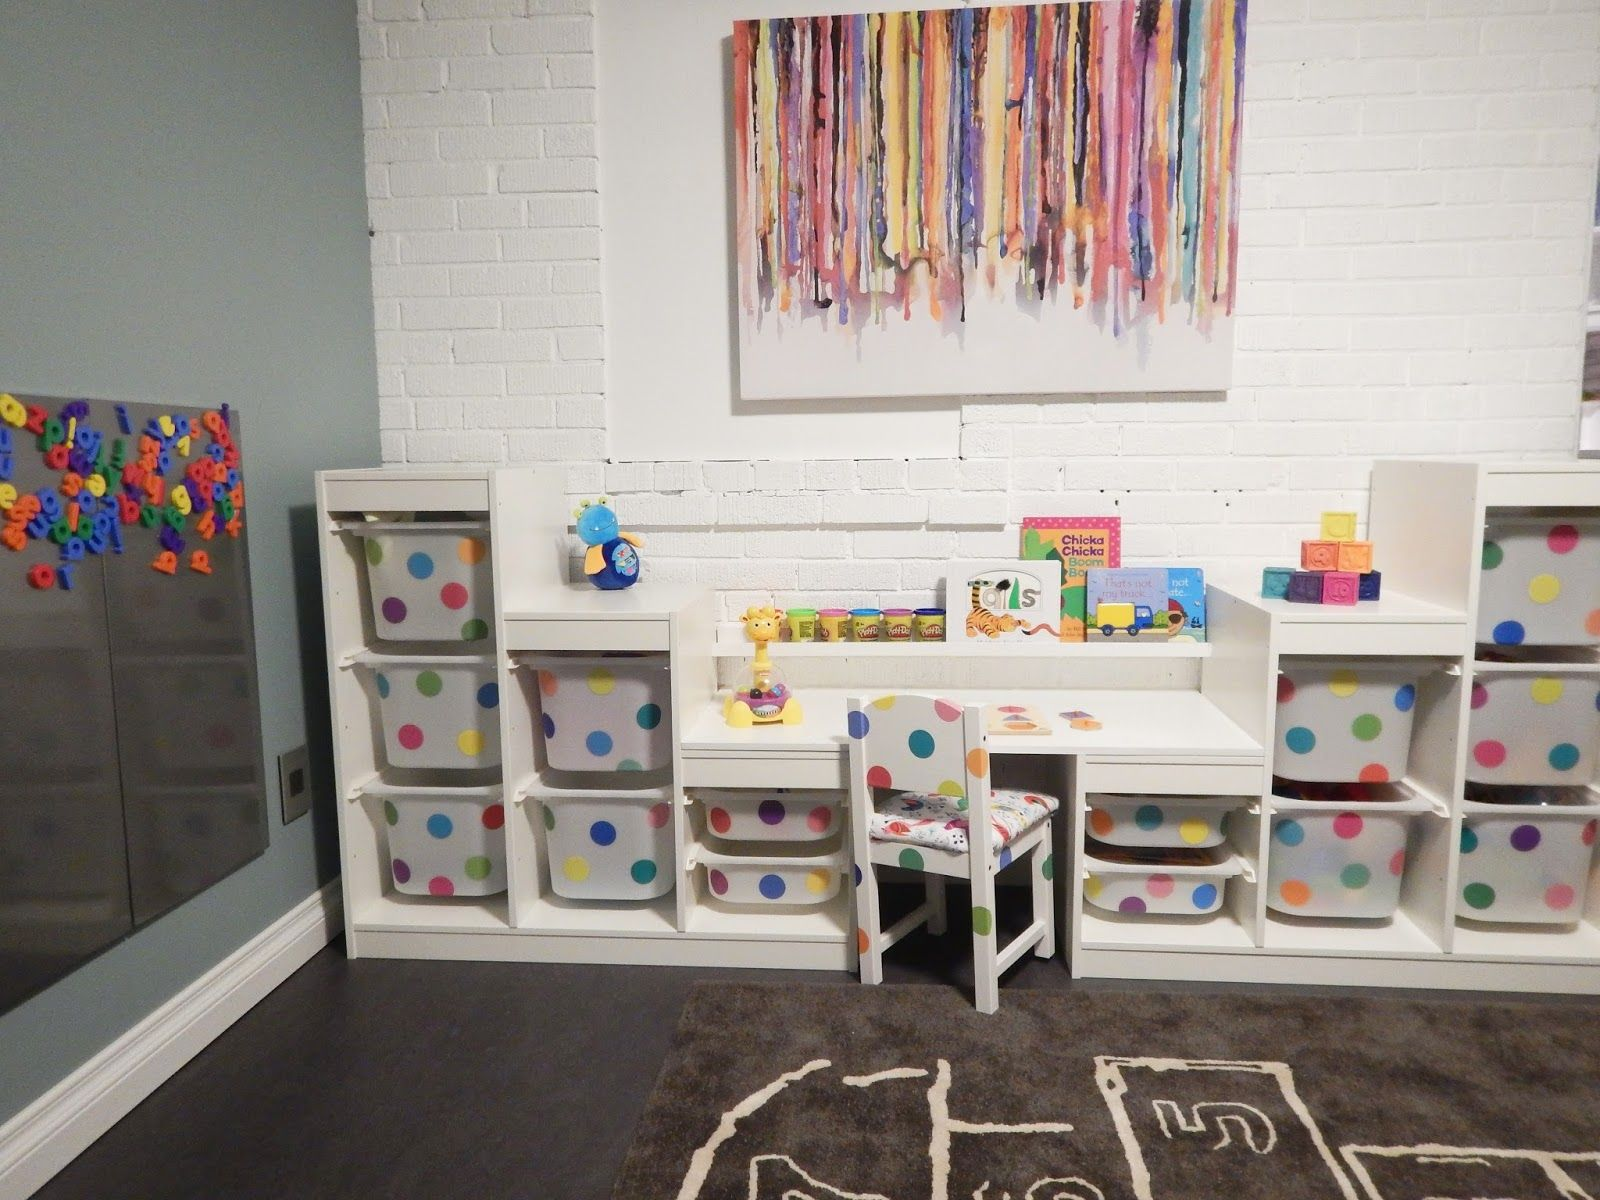 Design Ikea Playroom Ideas 5 ways to organize your playroom shelves catalog and playrooms fresh coat of paint ikea hack trofast storage system sundvik chair ribba